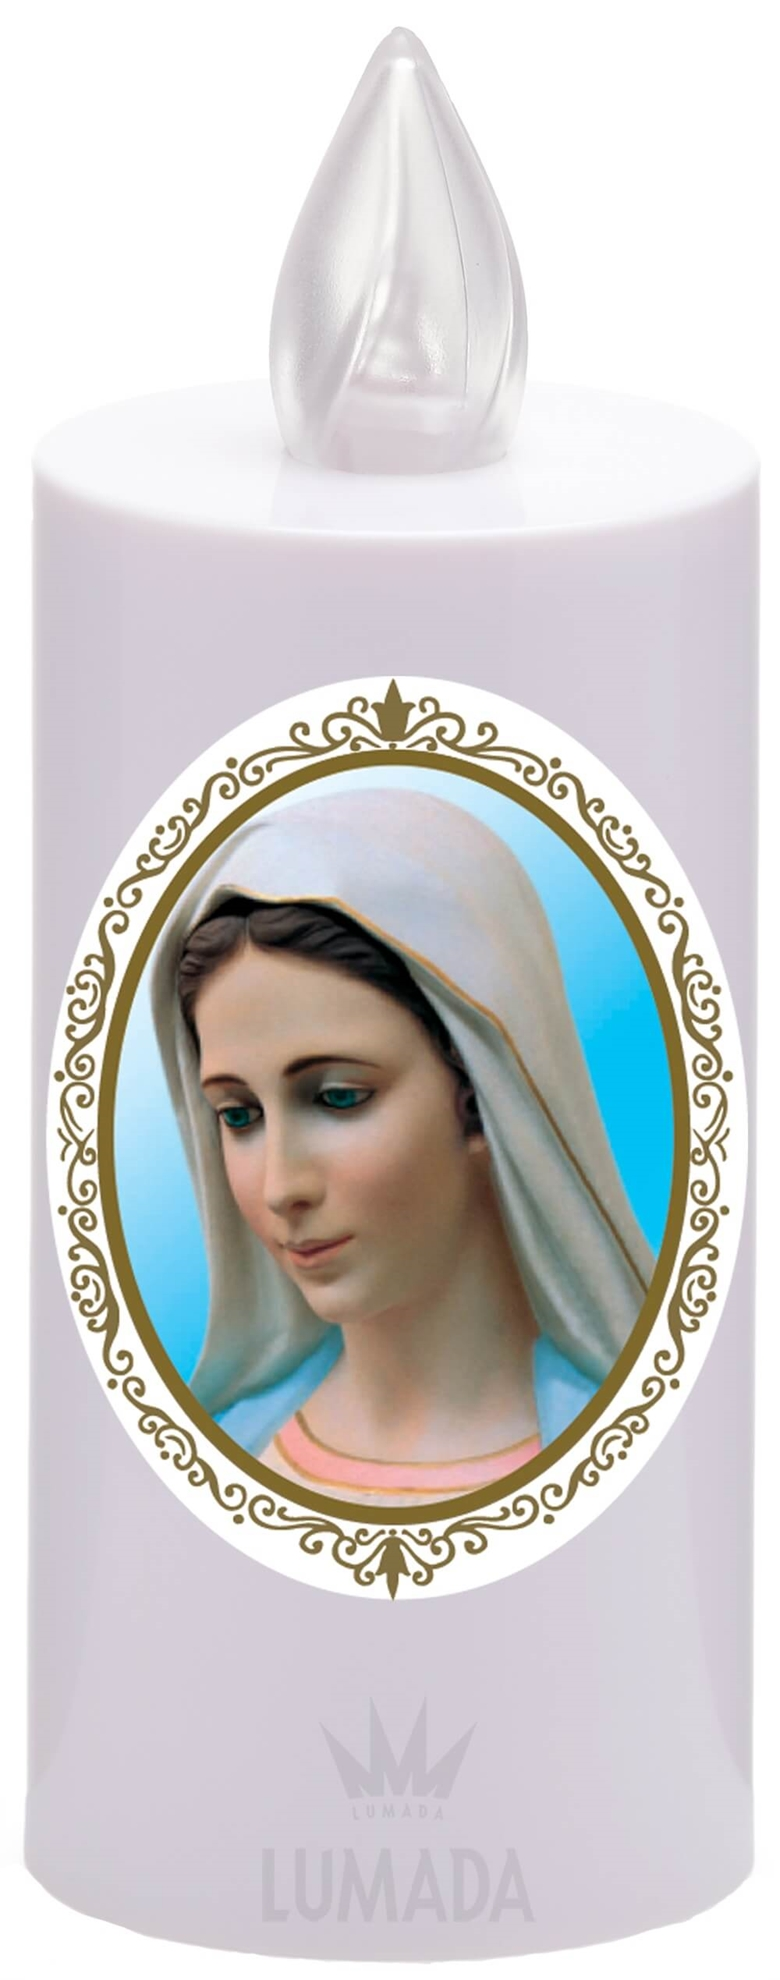 CANDLE ICON VIS18 WHITE (YELLOW/FLAME) D01 MEDJUGORJE - SKU: VIS18B-6D01